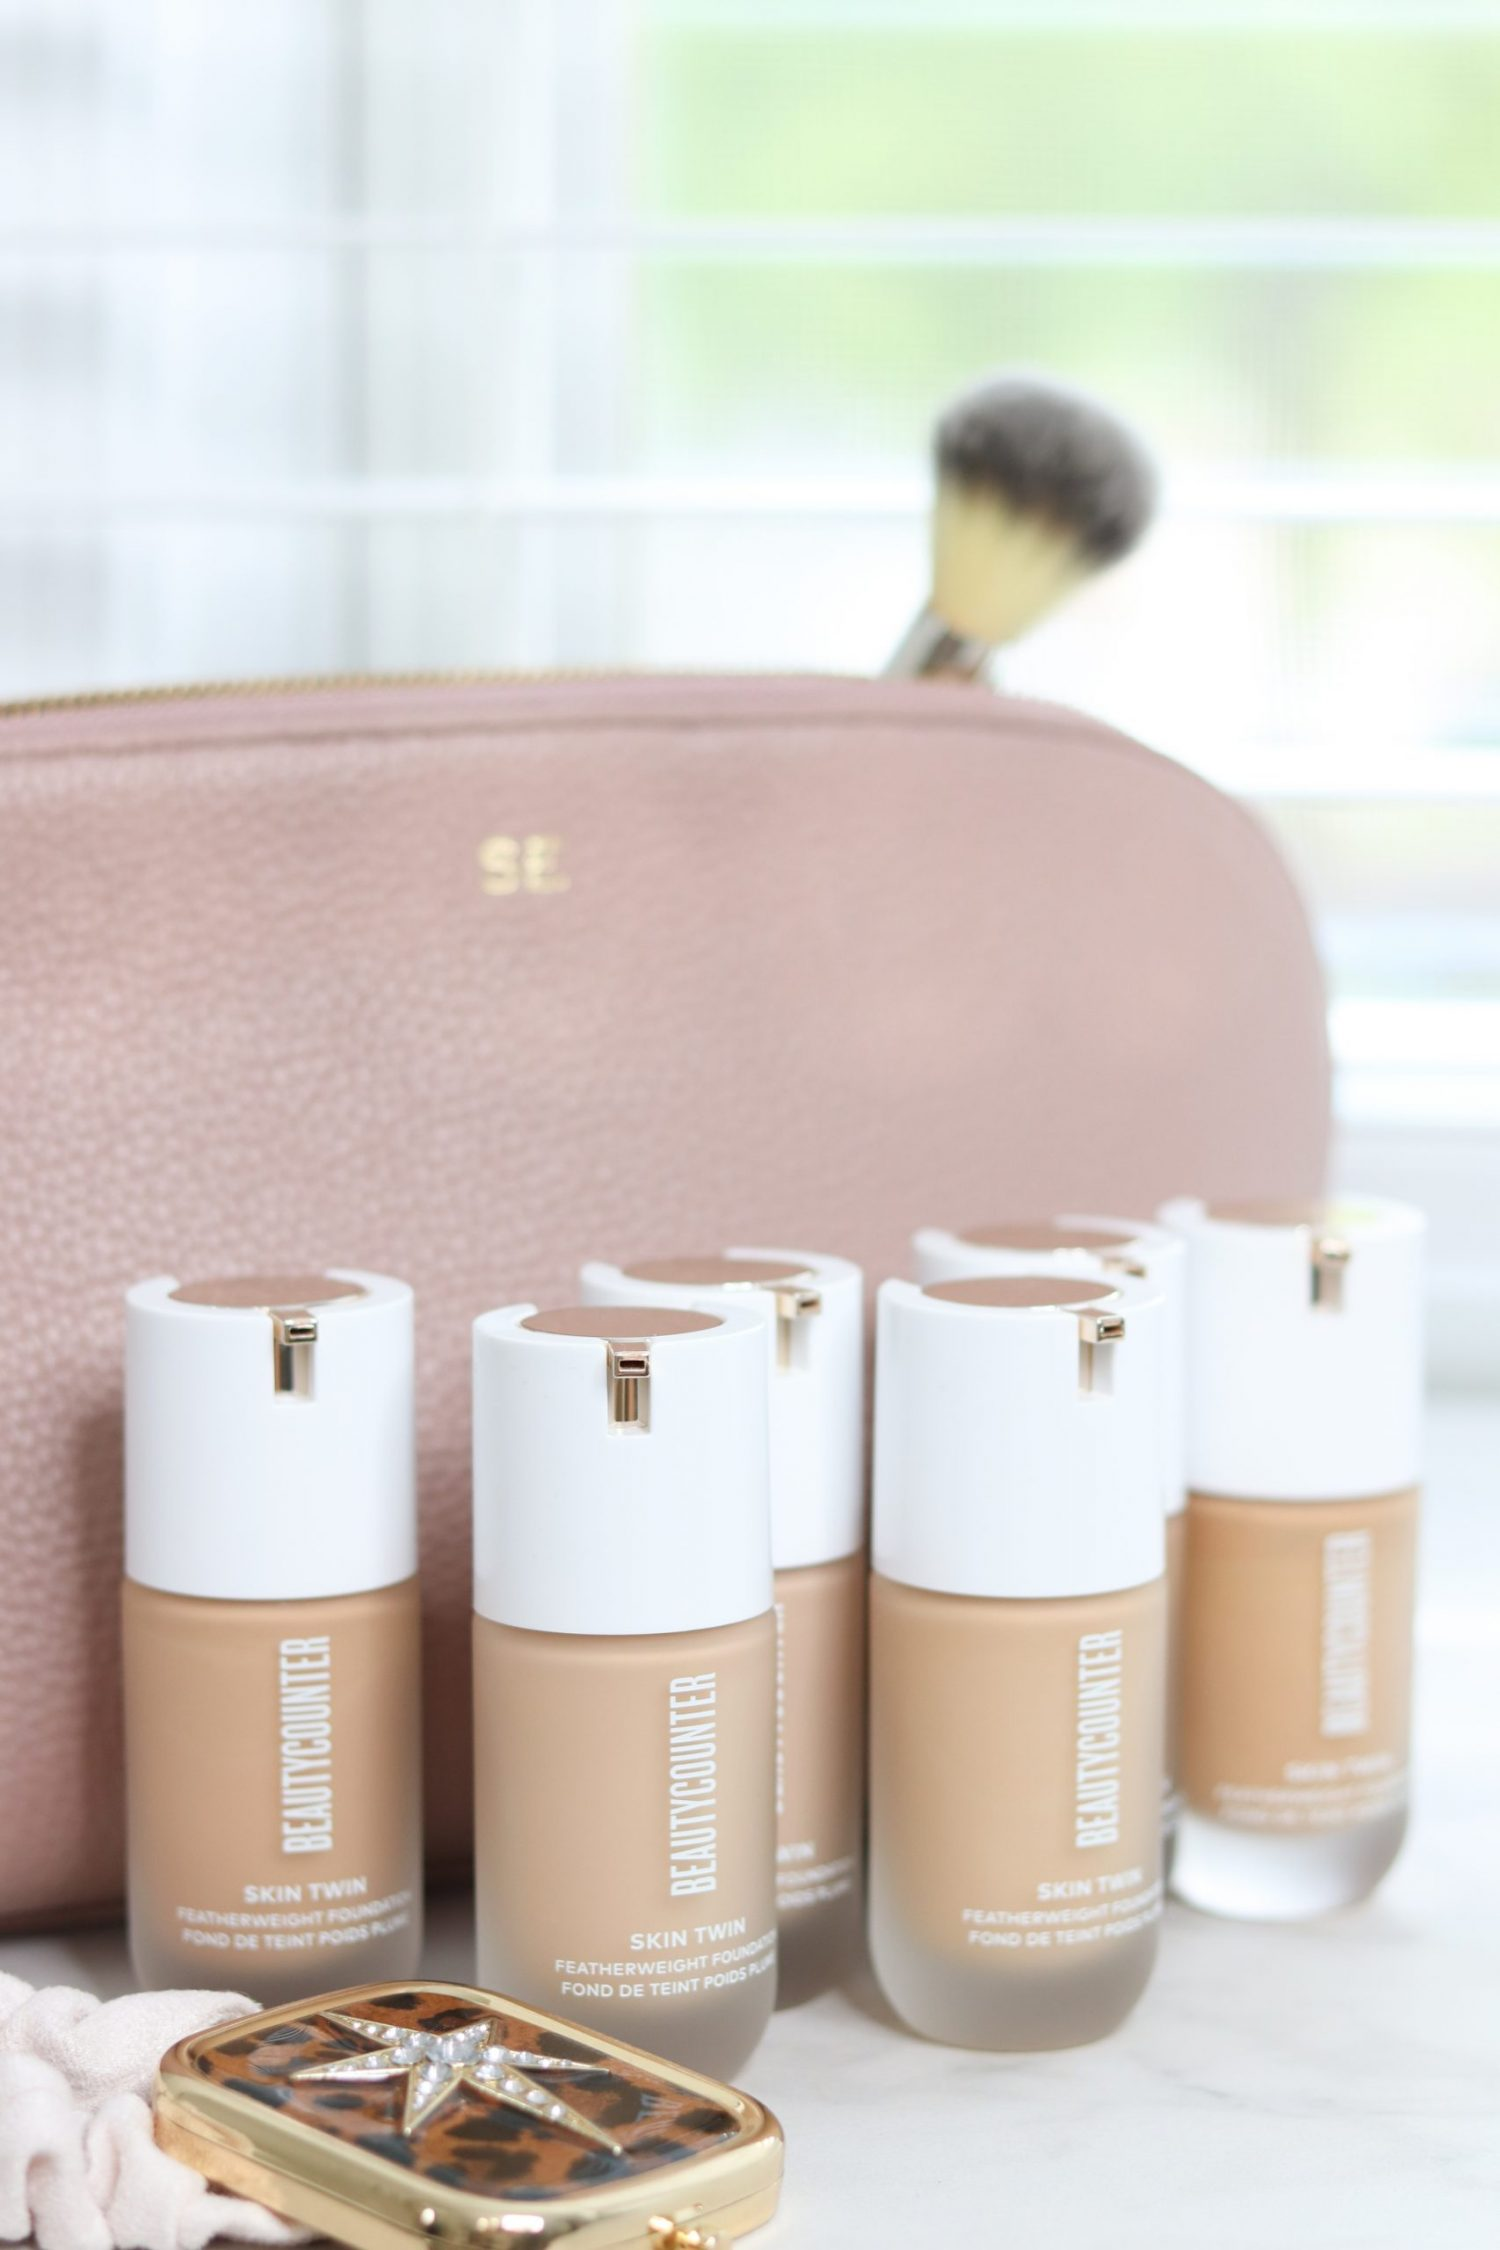 Beautycounter Skin Twin Foundation | All About Joining Beautycounter